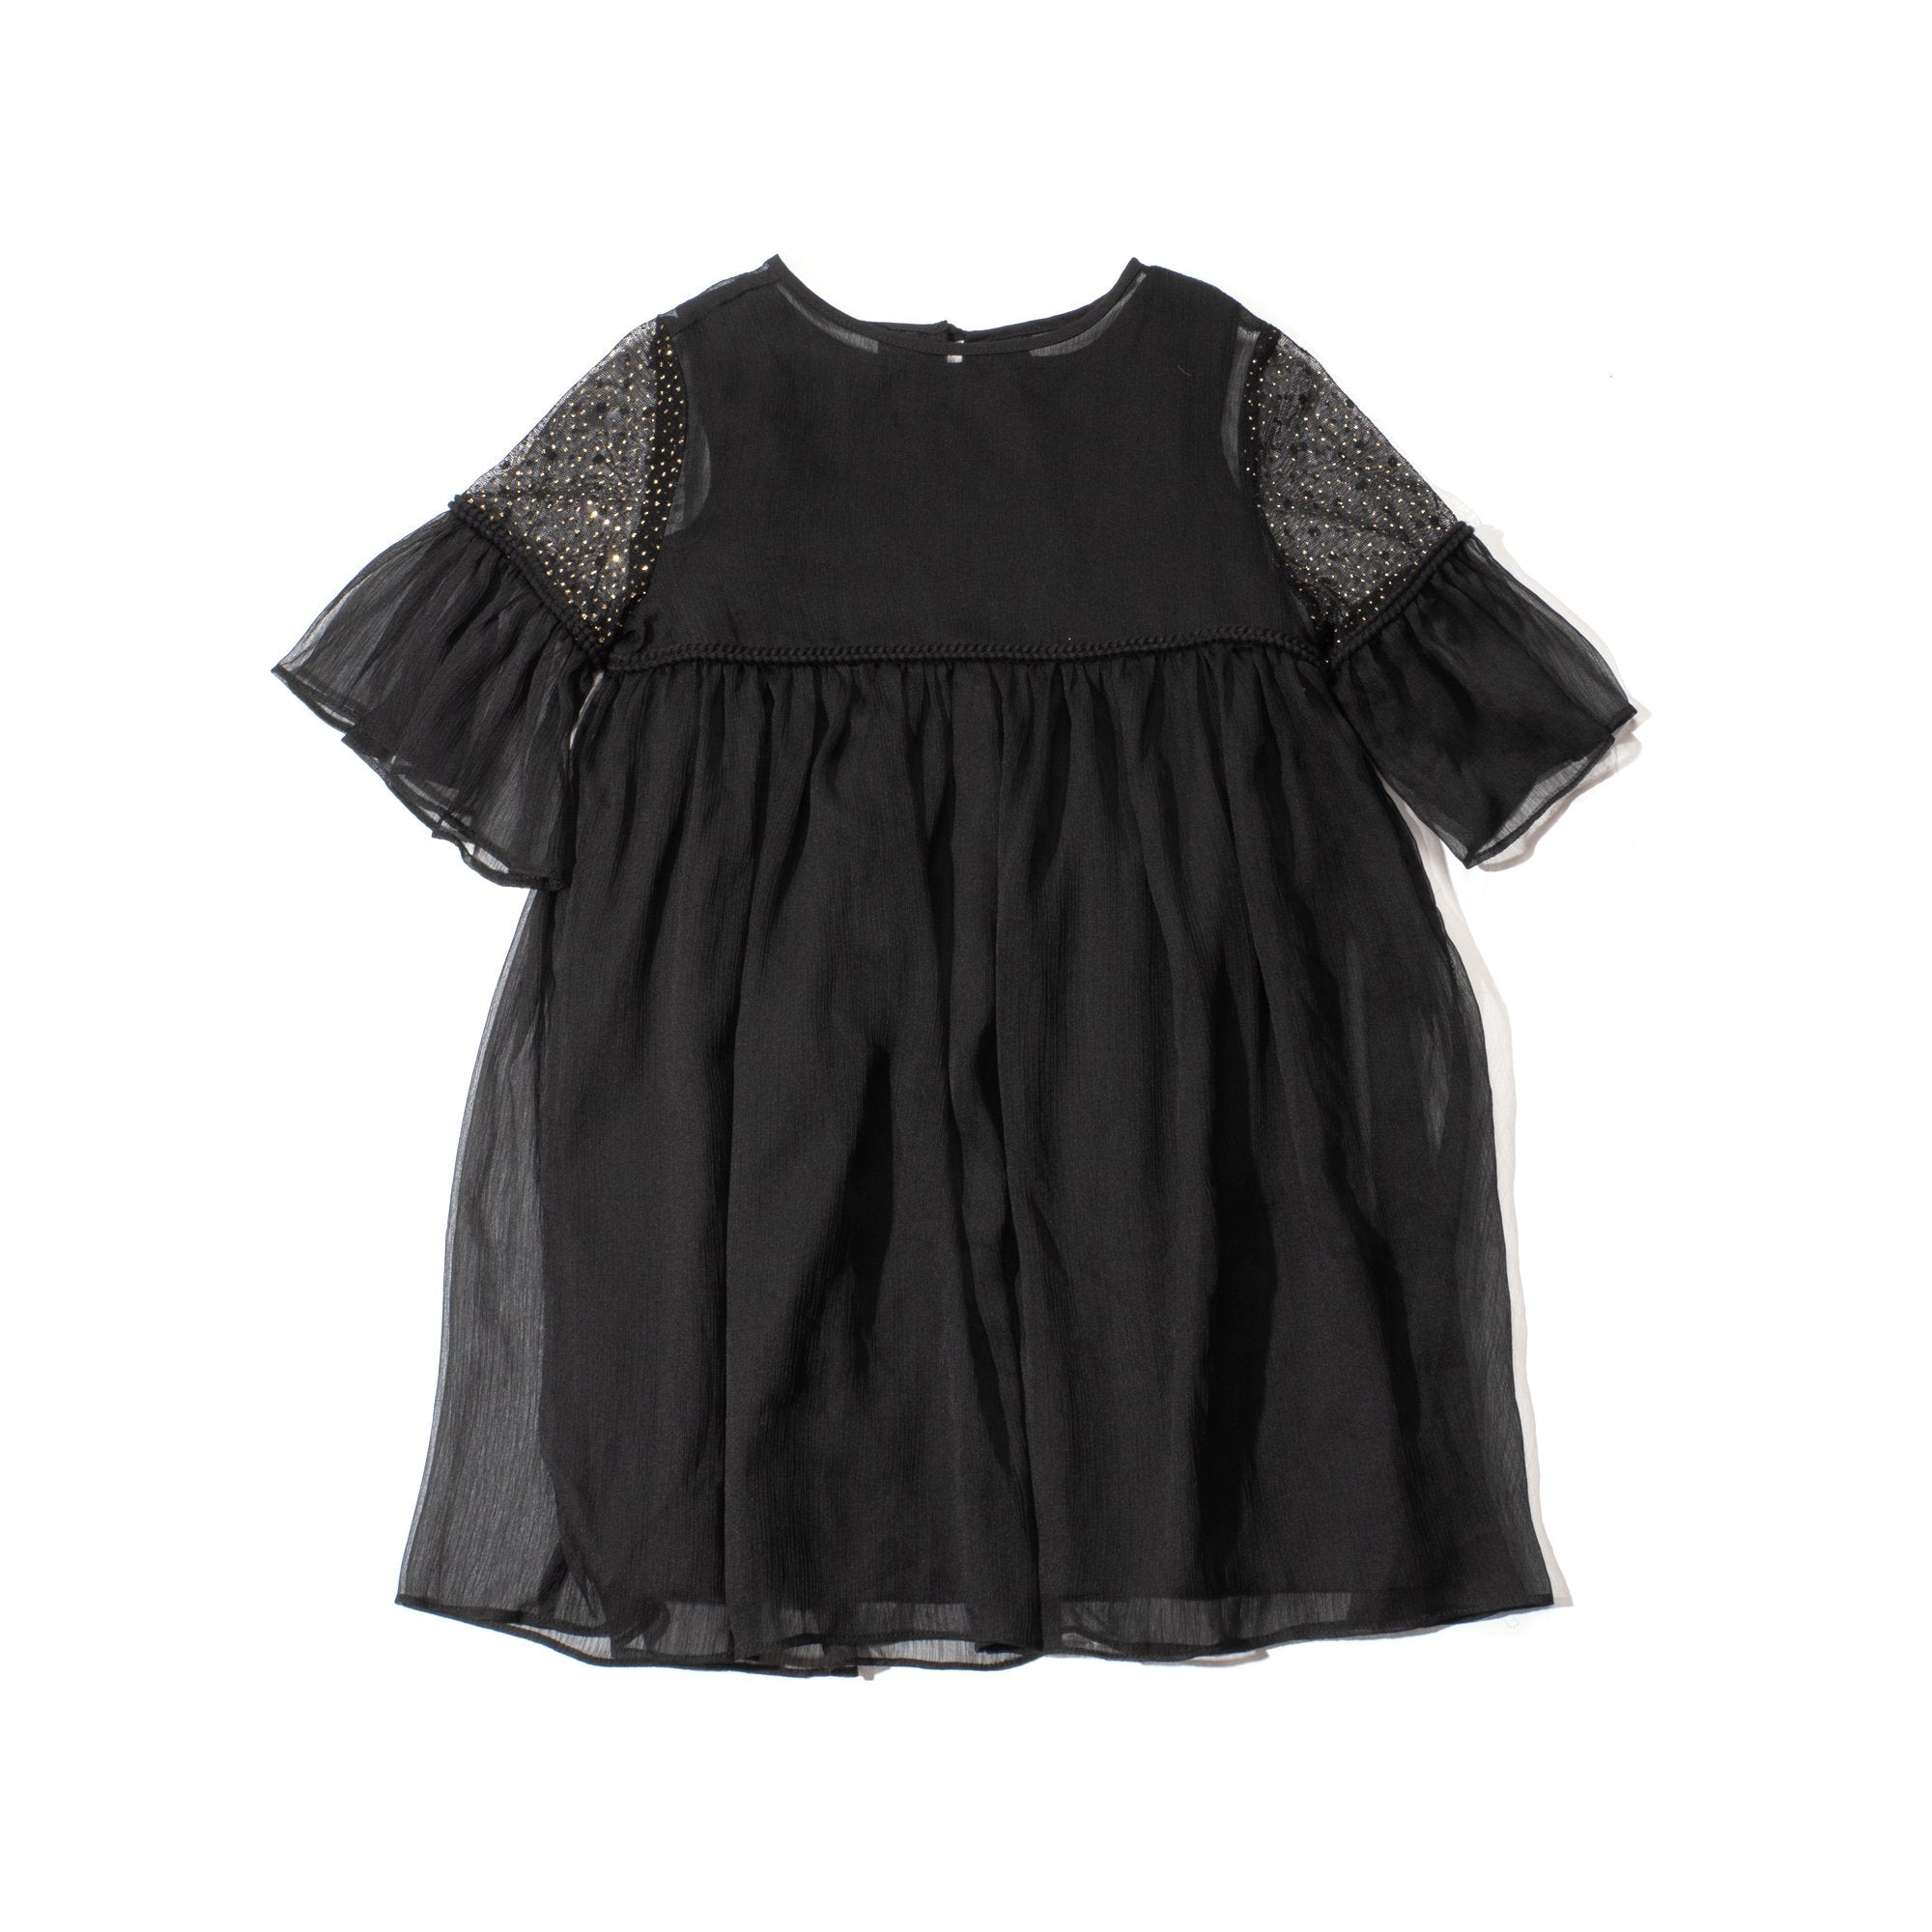 [Raya]Poney Girls Three Quarter Sleeve Dress 2015